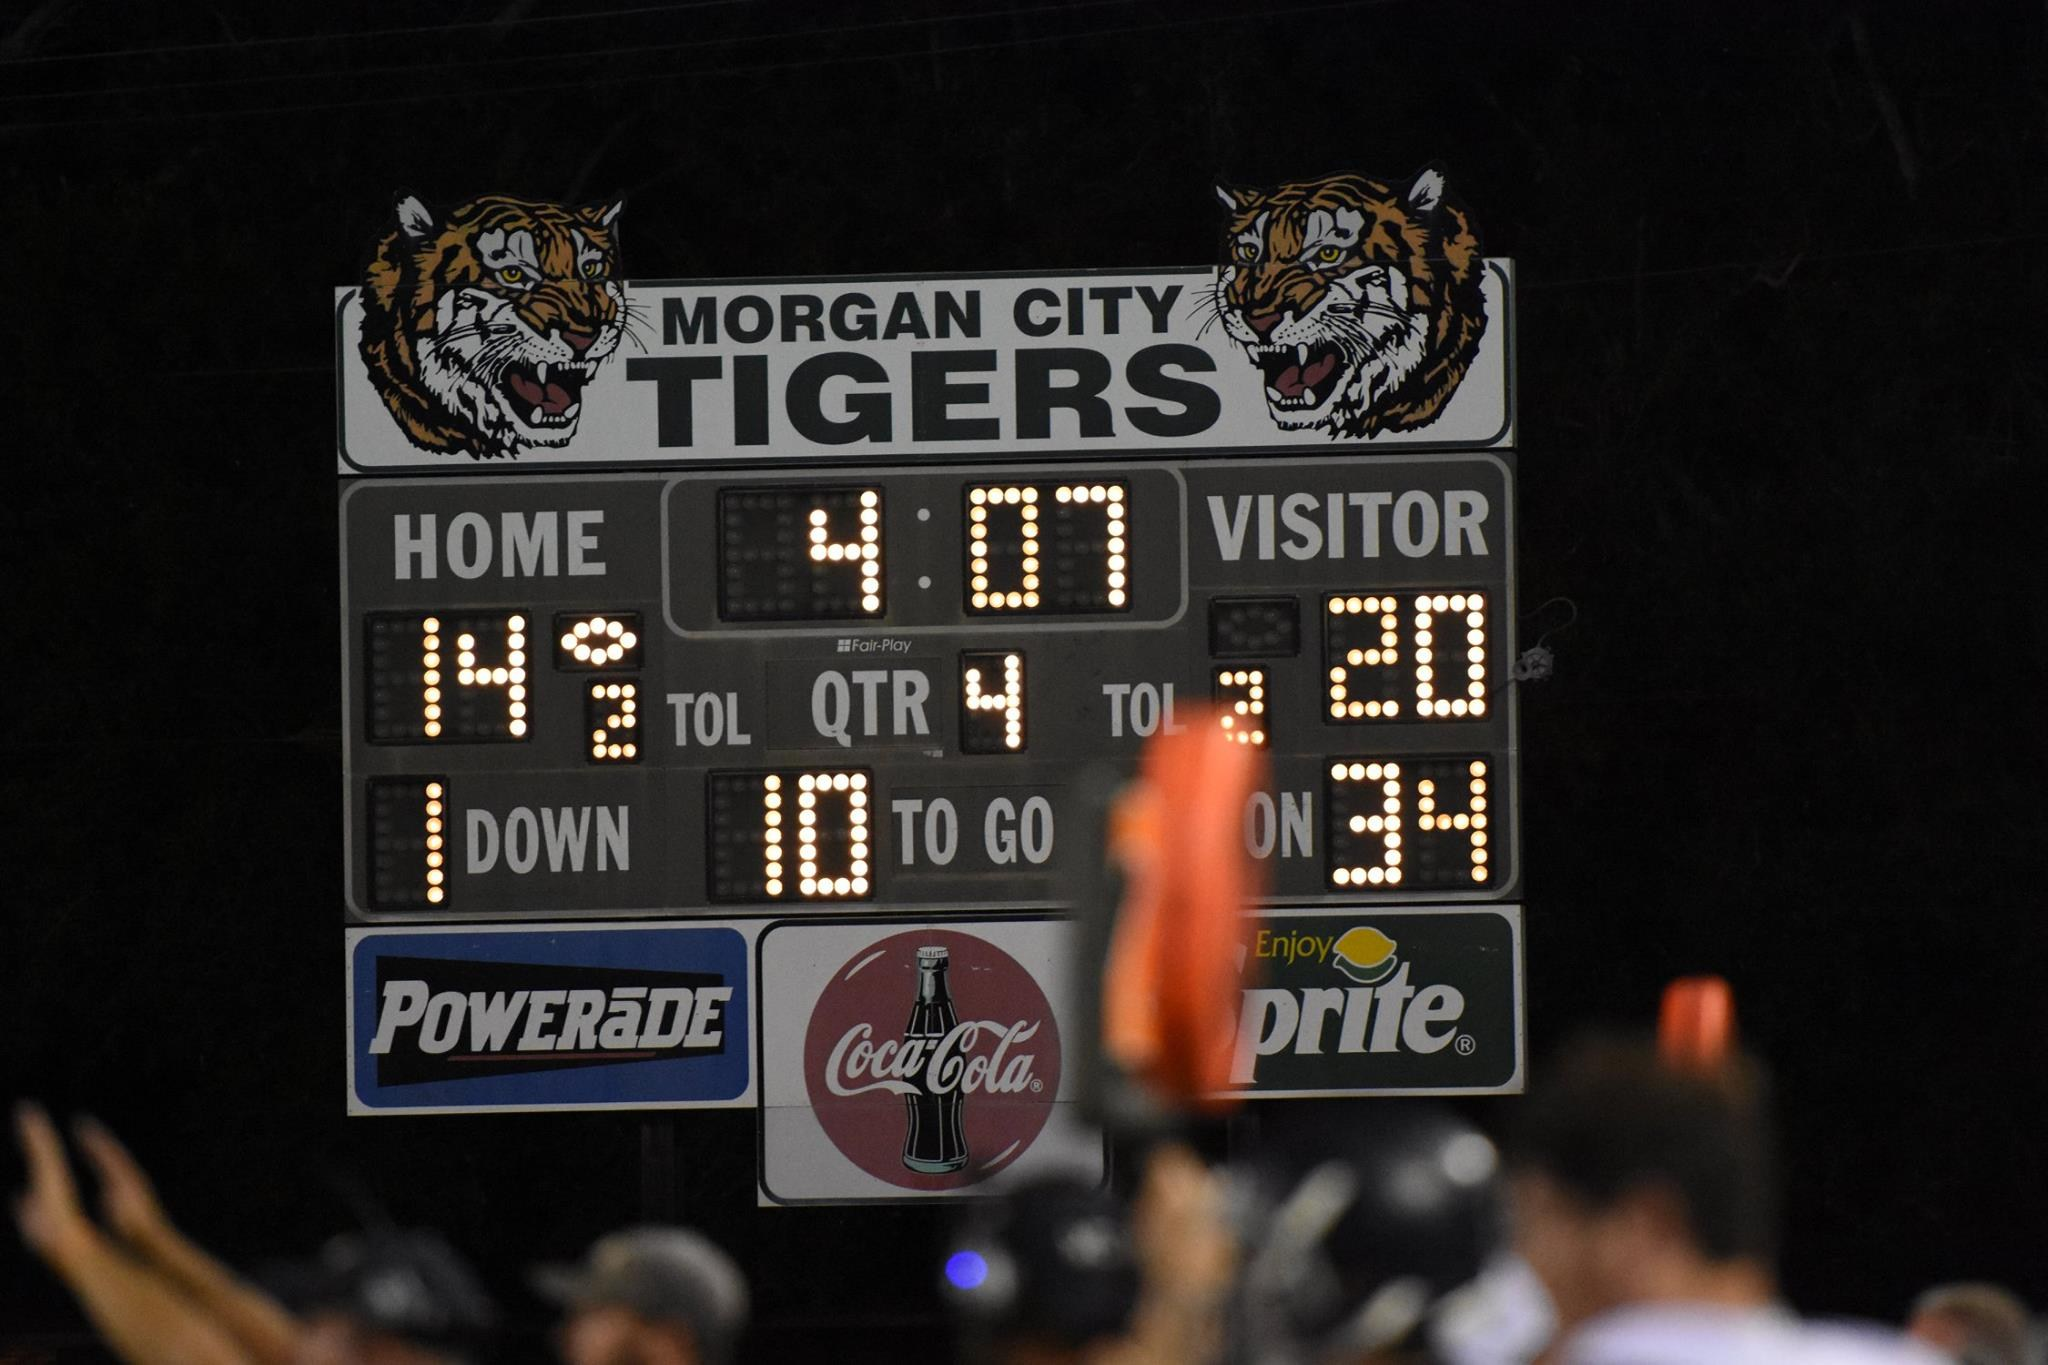 Back to Back wins over 4A Morgan City!